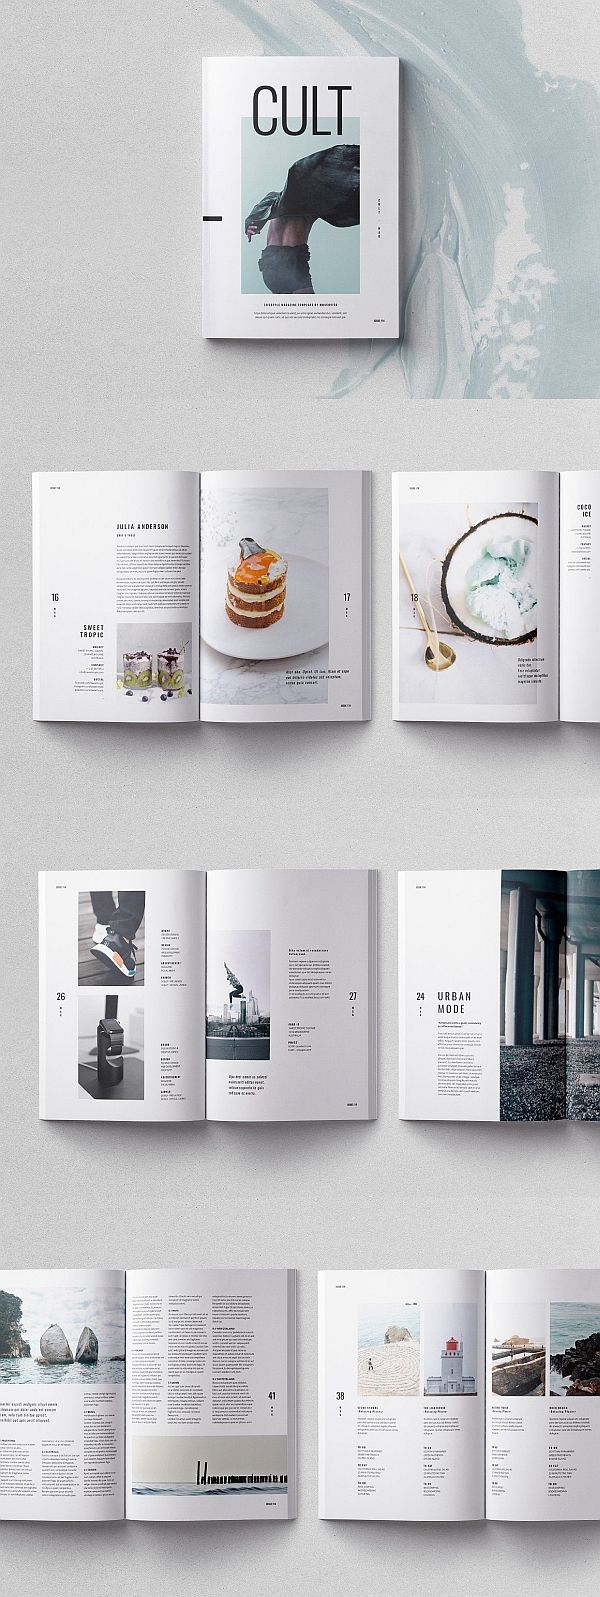 44 Seiten InDesign Template / Cult Magazine